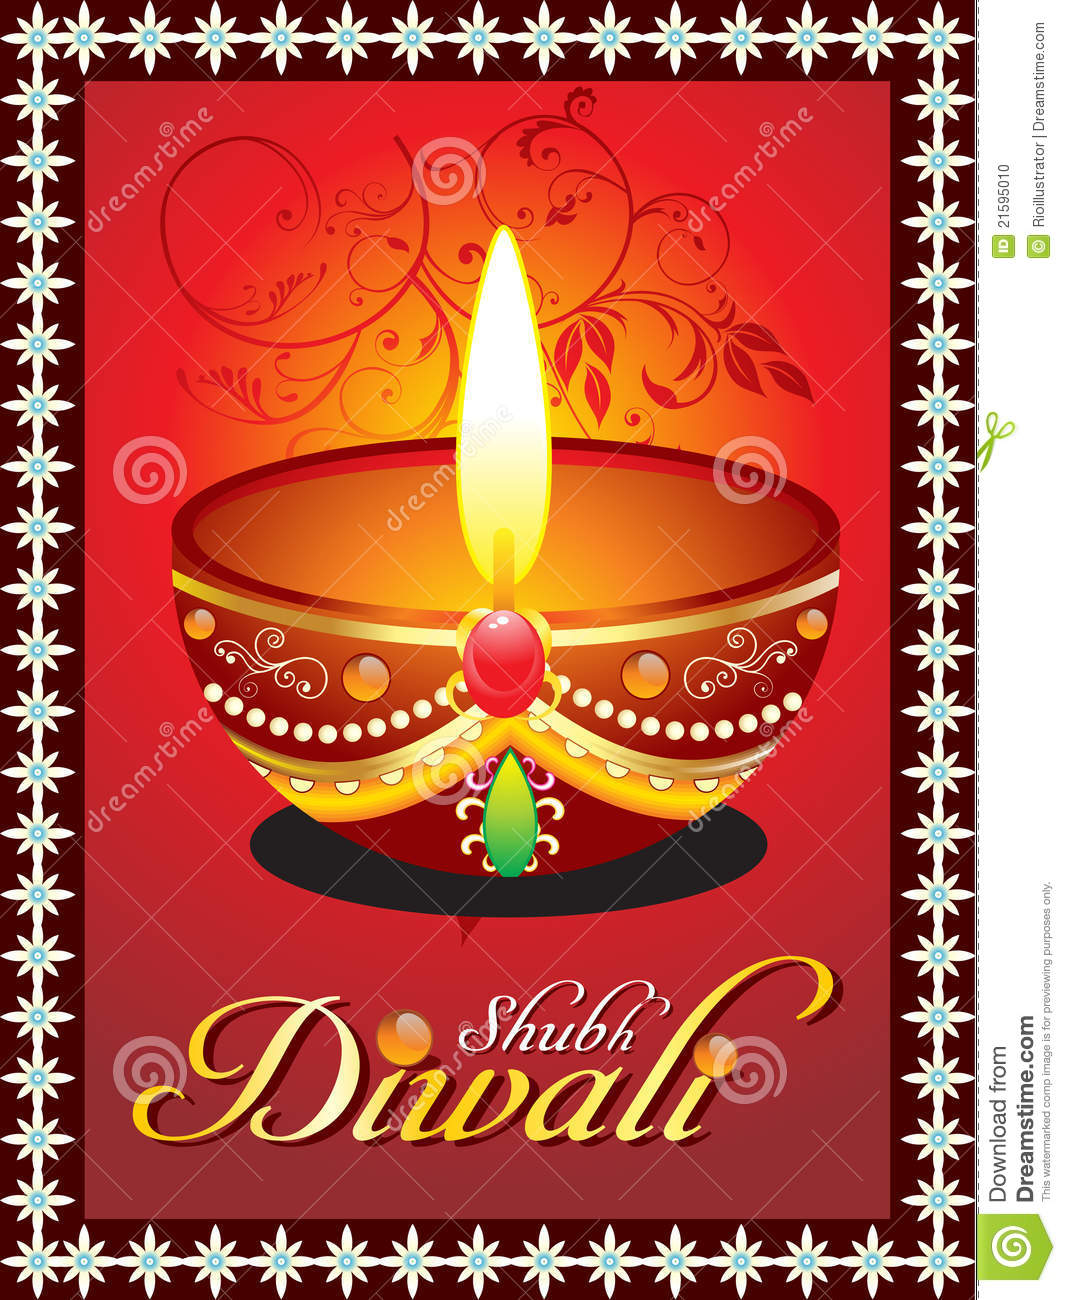 Abstract diwali greeting card with floral stock vector abstract diwali greeting card with floral kristyandbryce Images